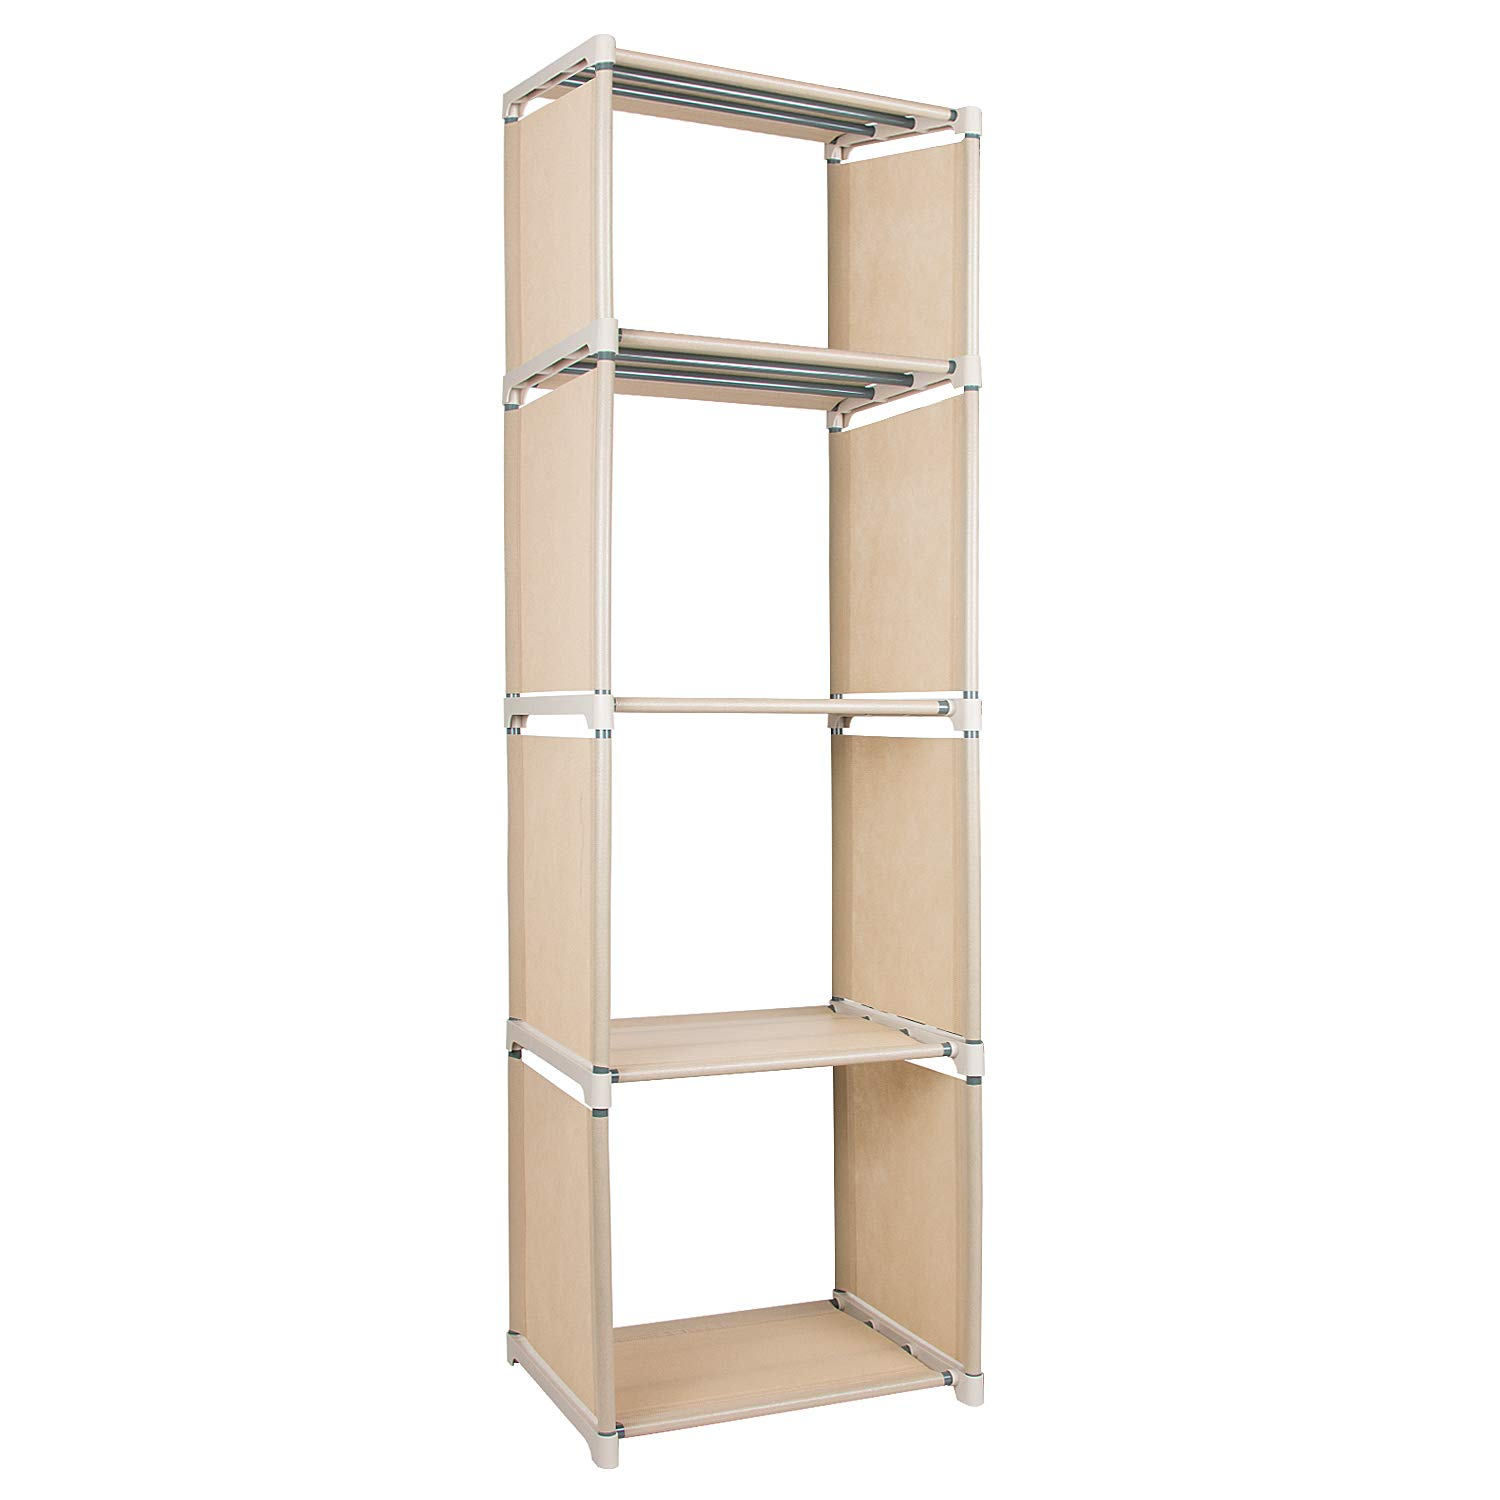 Azadx 4 Cube Bookcase, Home Furniture Storage Bookshelf Storage for Kids' Bookcases, Cabinets & Shelves